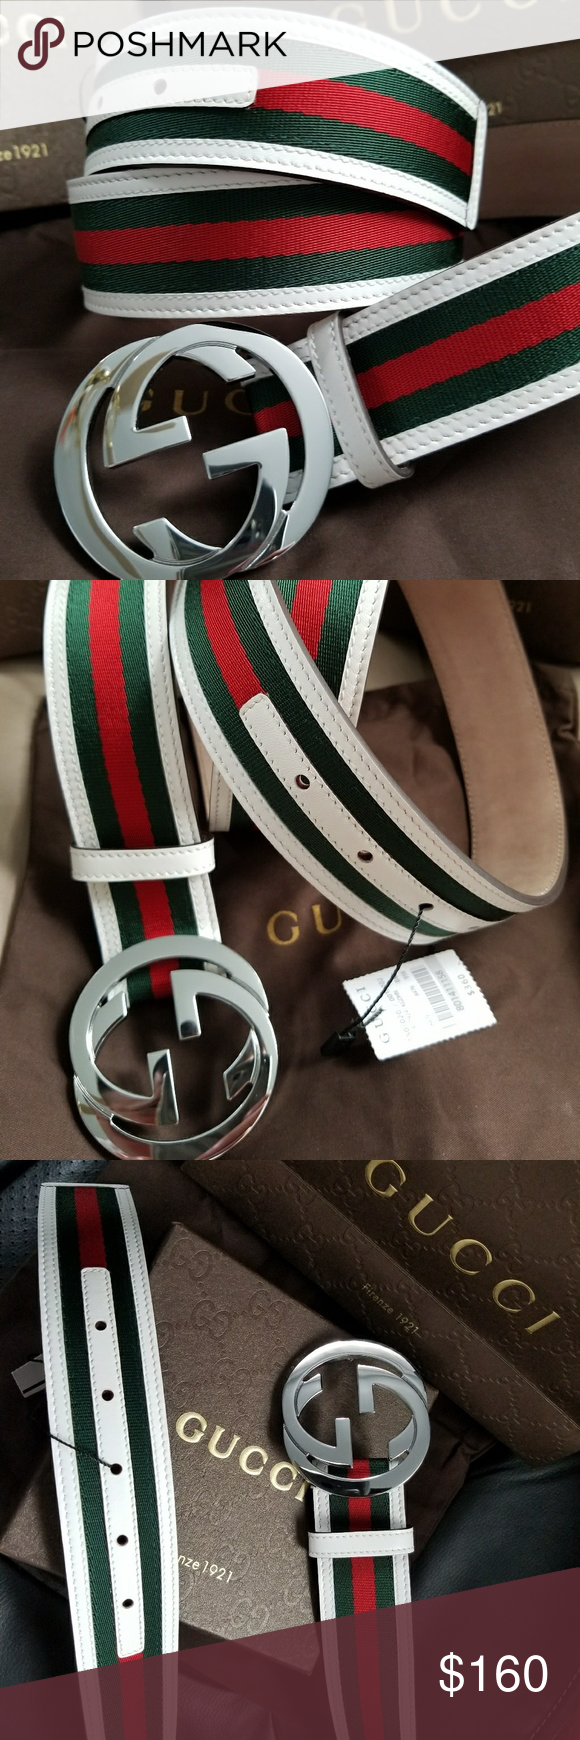 e8a3bab2659 😍Authentic Gucci Belt White Green Red Stripes 😍Brand New Gucci Belt Green  Red Stripes